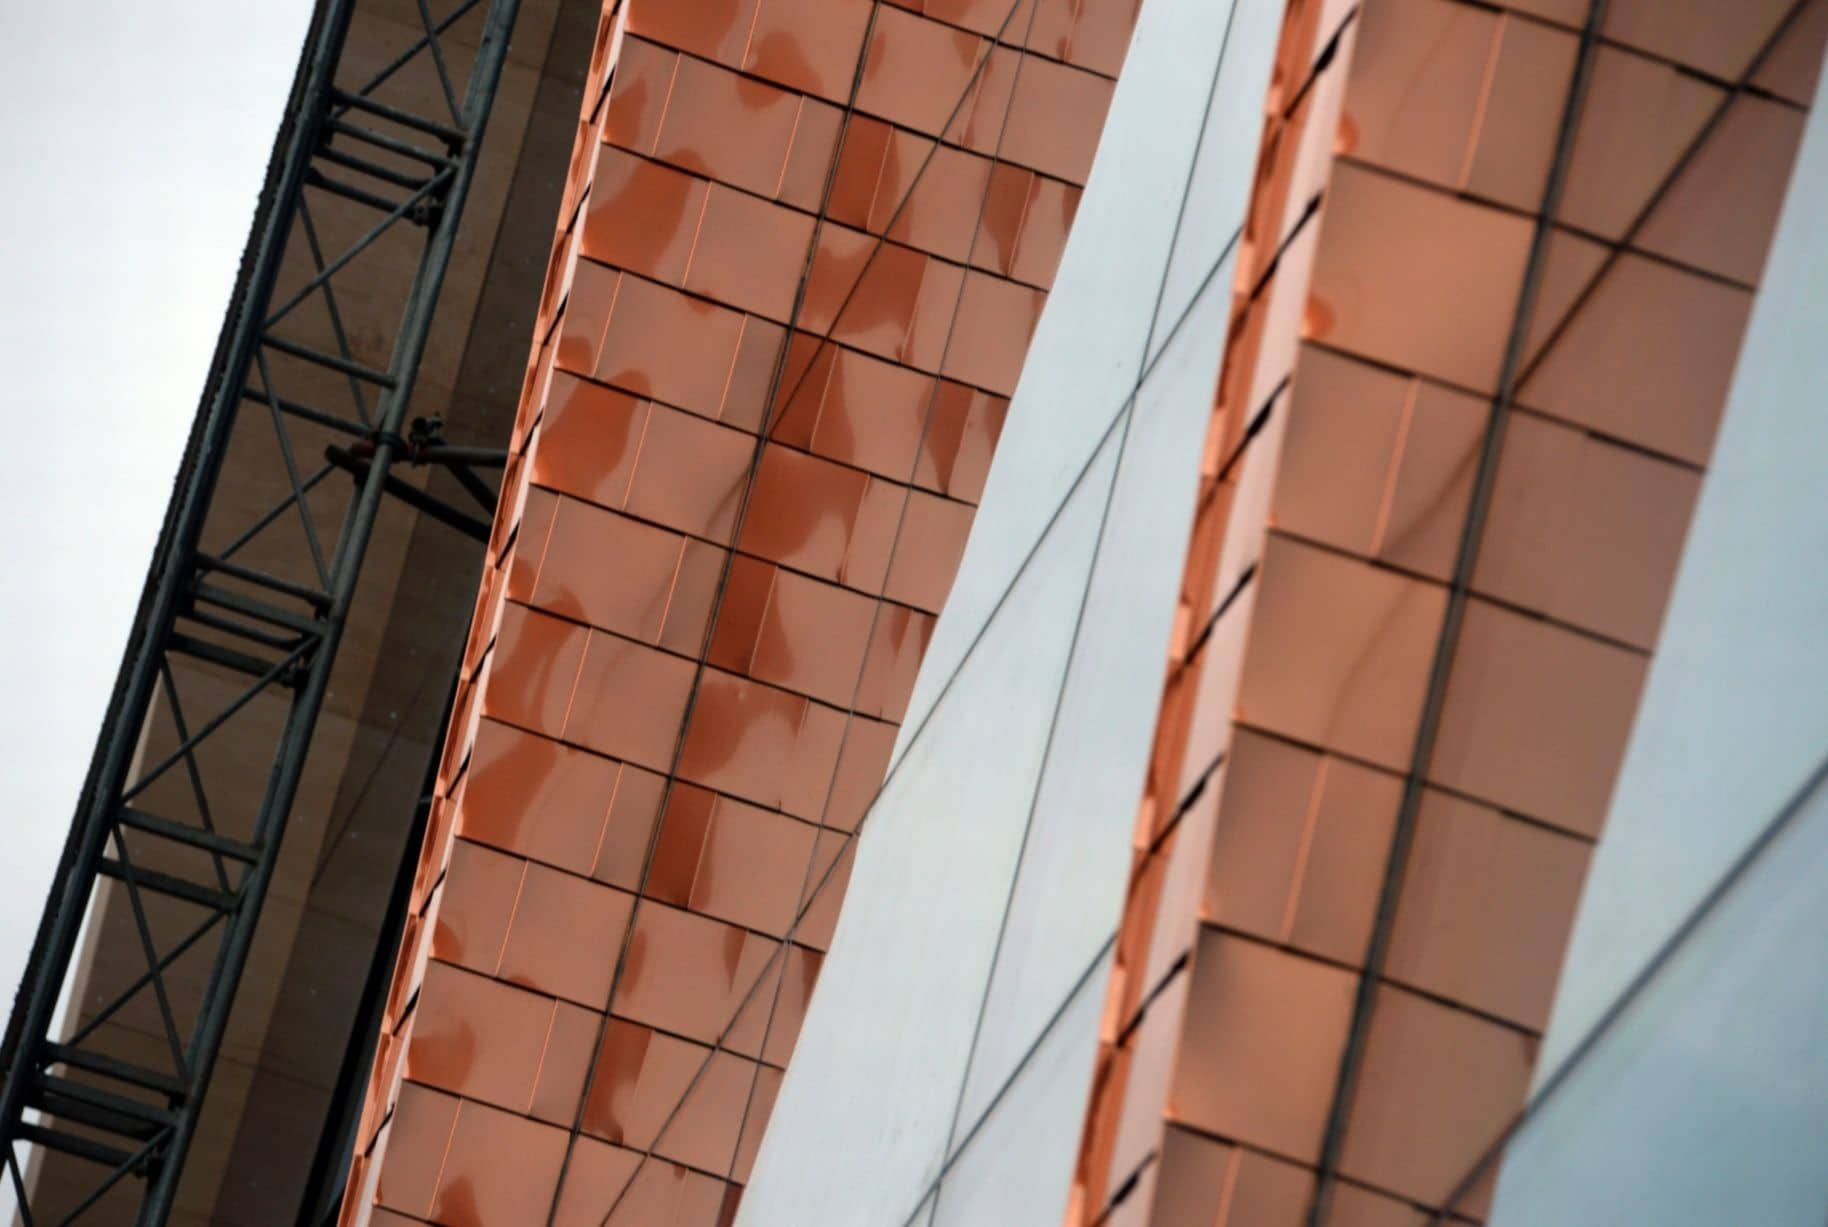 Section of building of Barclaycard Transformation